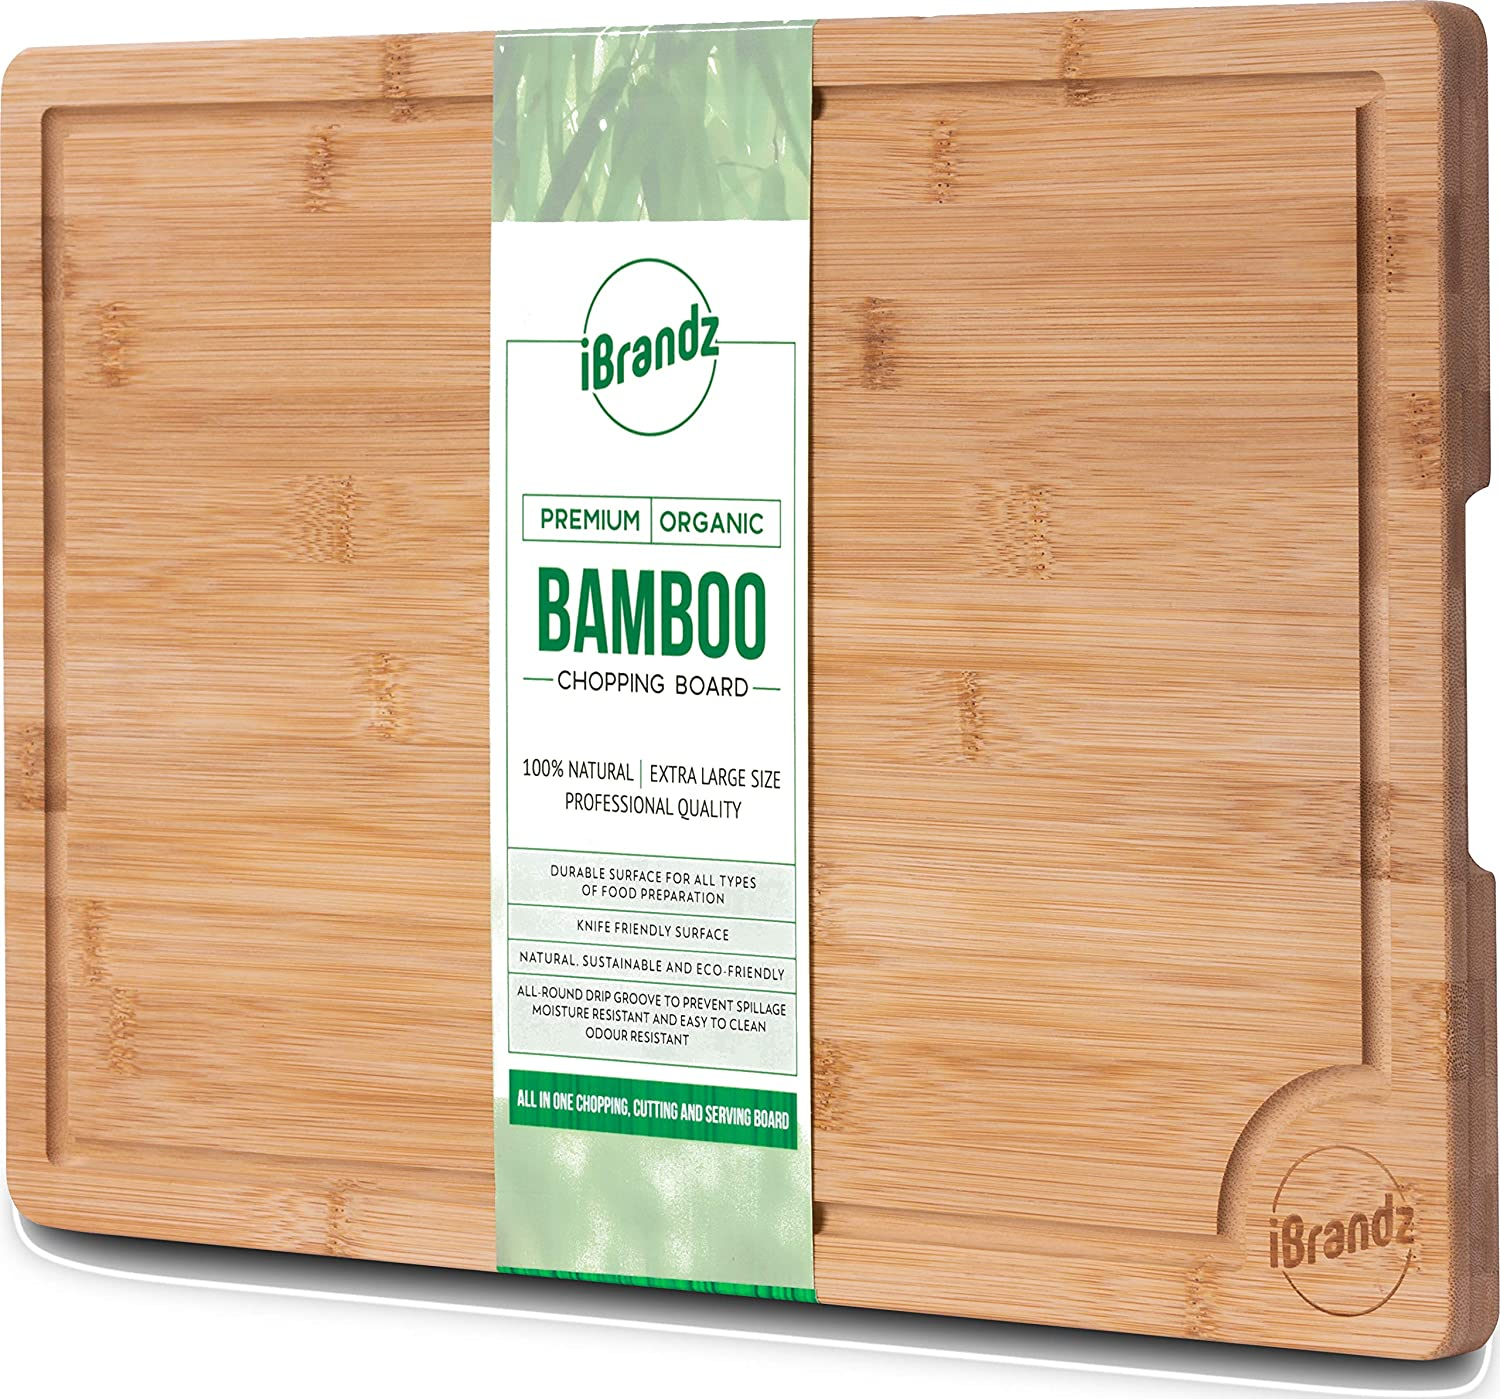 iBrandz Premium Extra Large Eco-friendly 100% Organic Bamboo Wood Chopping Board With Drip / Juice Groove. Professional Grade Kitchen Chopping Board For Meat (Butcher Block) Cheese Vegetables And Bread. Anti Microbial Heavy Duty Cutting Board And Serving